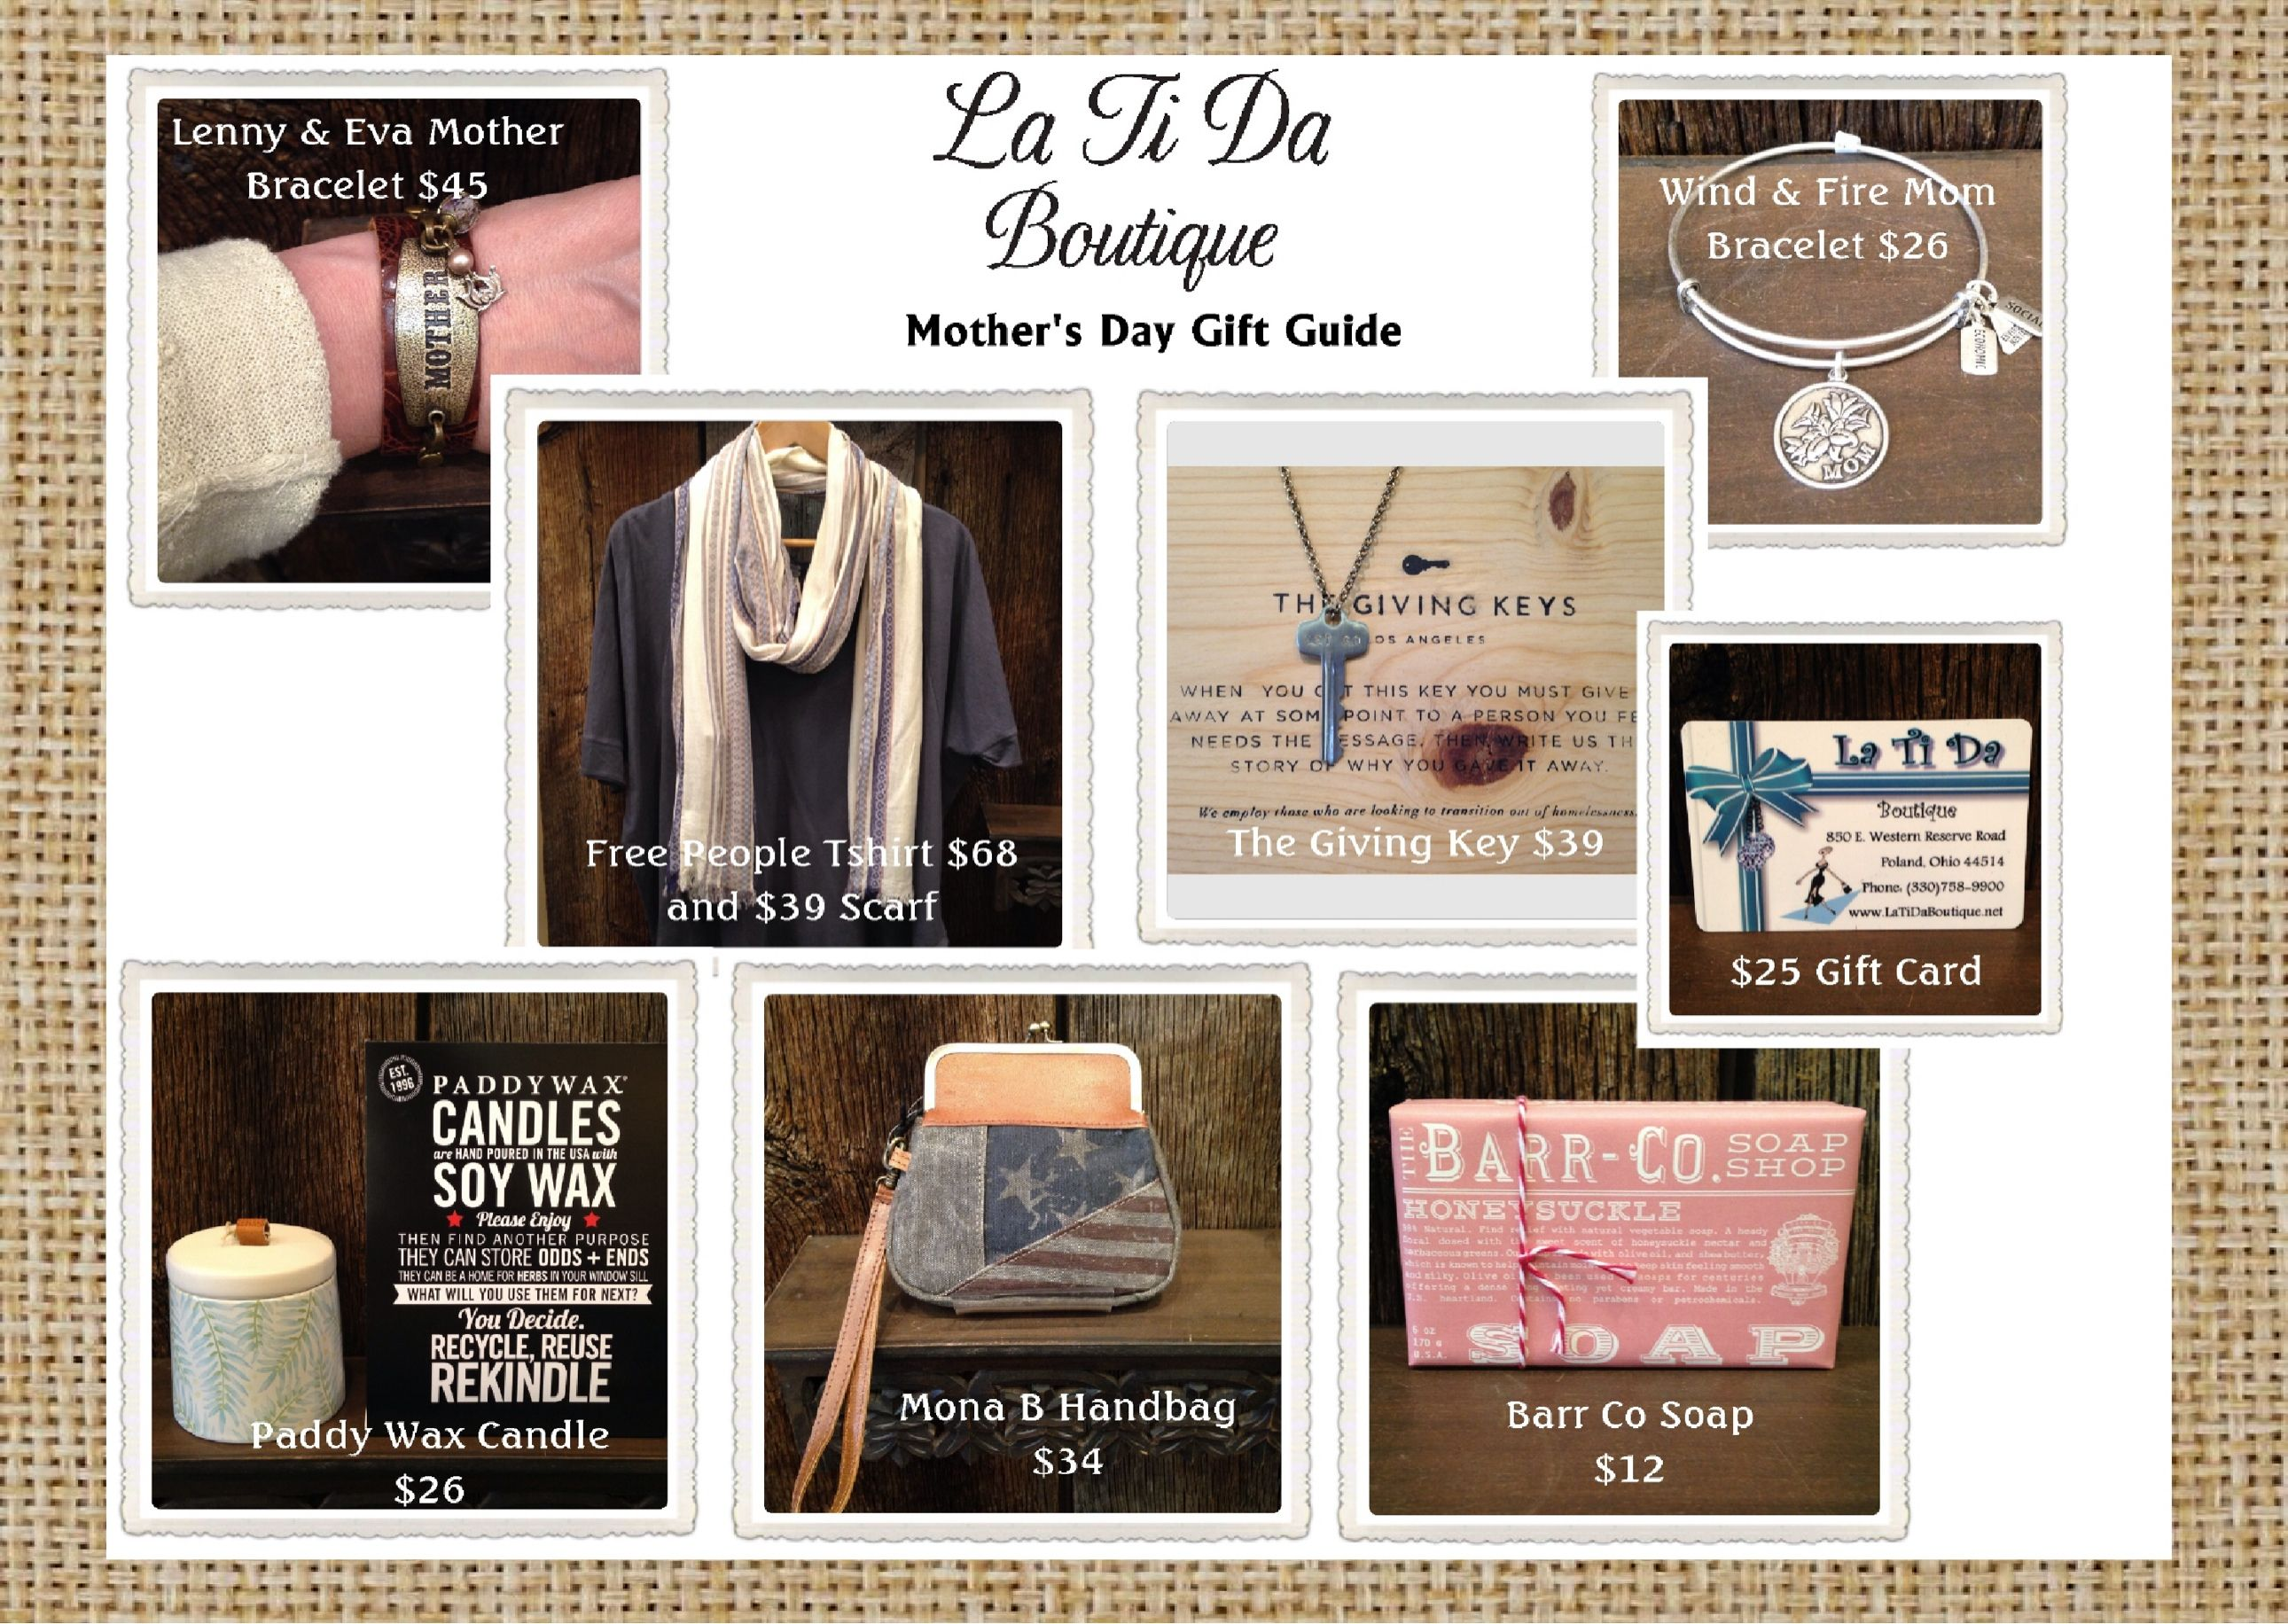 Mother's Day Gift Guide at La Ti Da Boutique!  All items are on sale Buy One Get One 40% OFF!